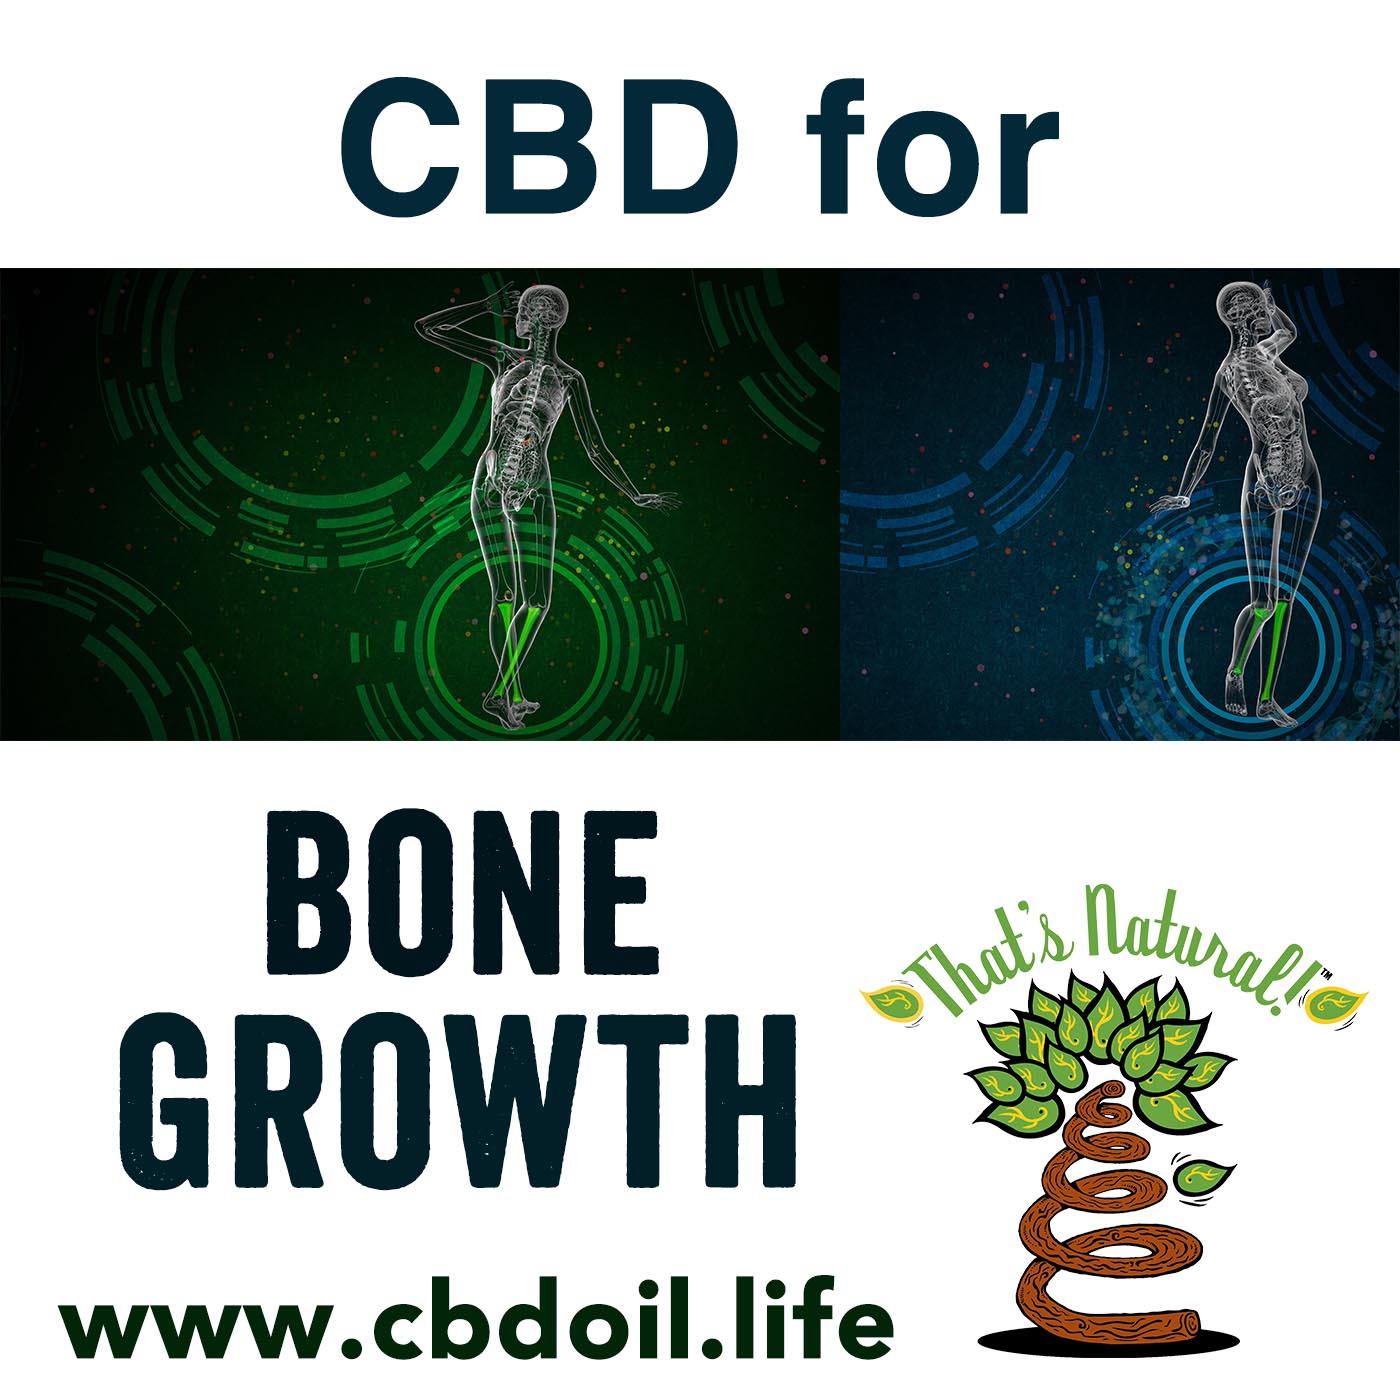 CBD for Bone Growth from That's Natural, V2